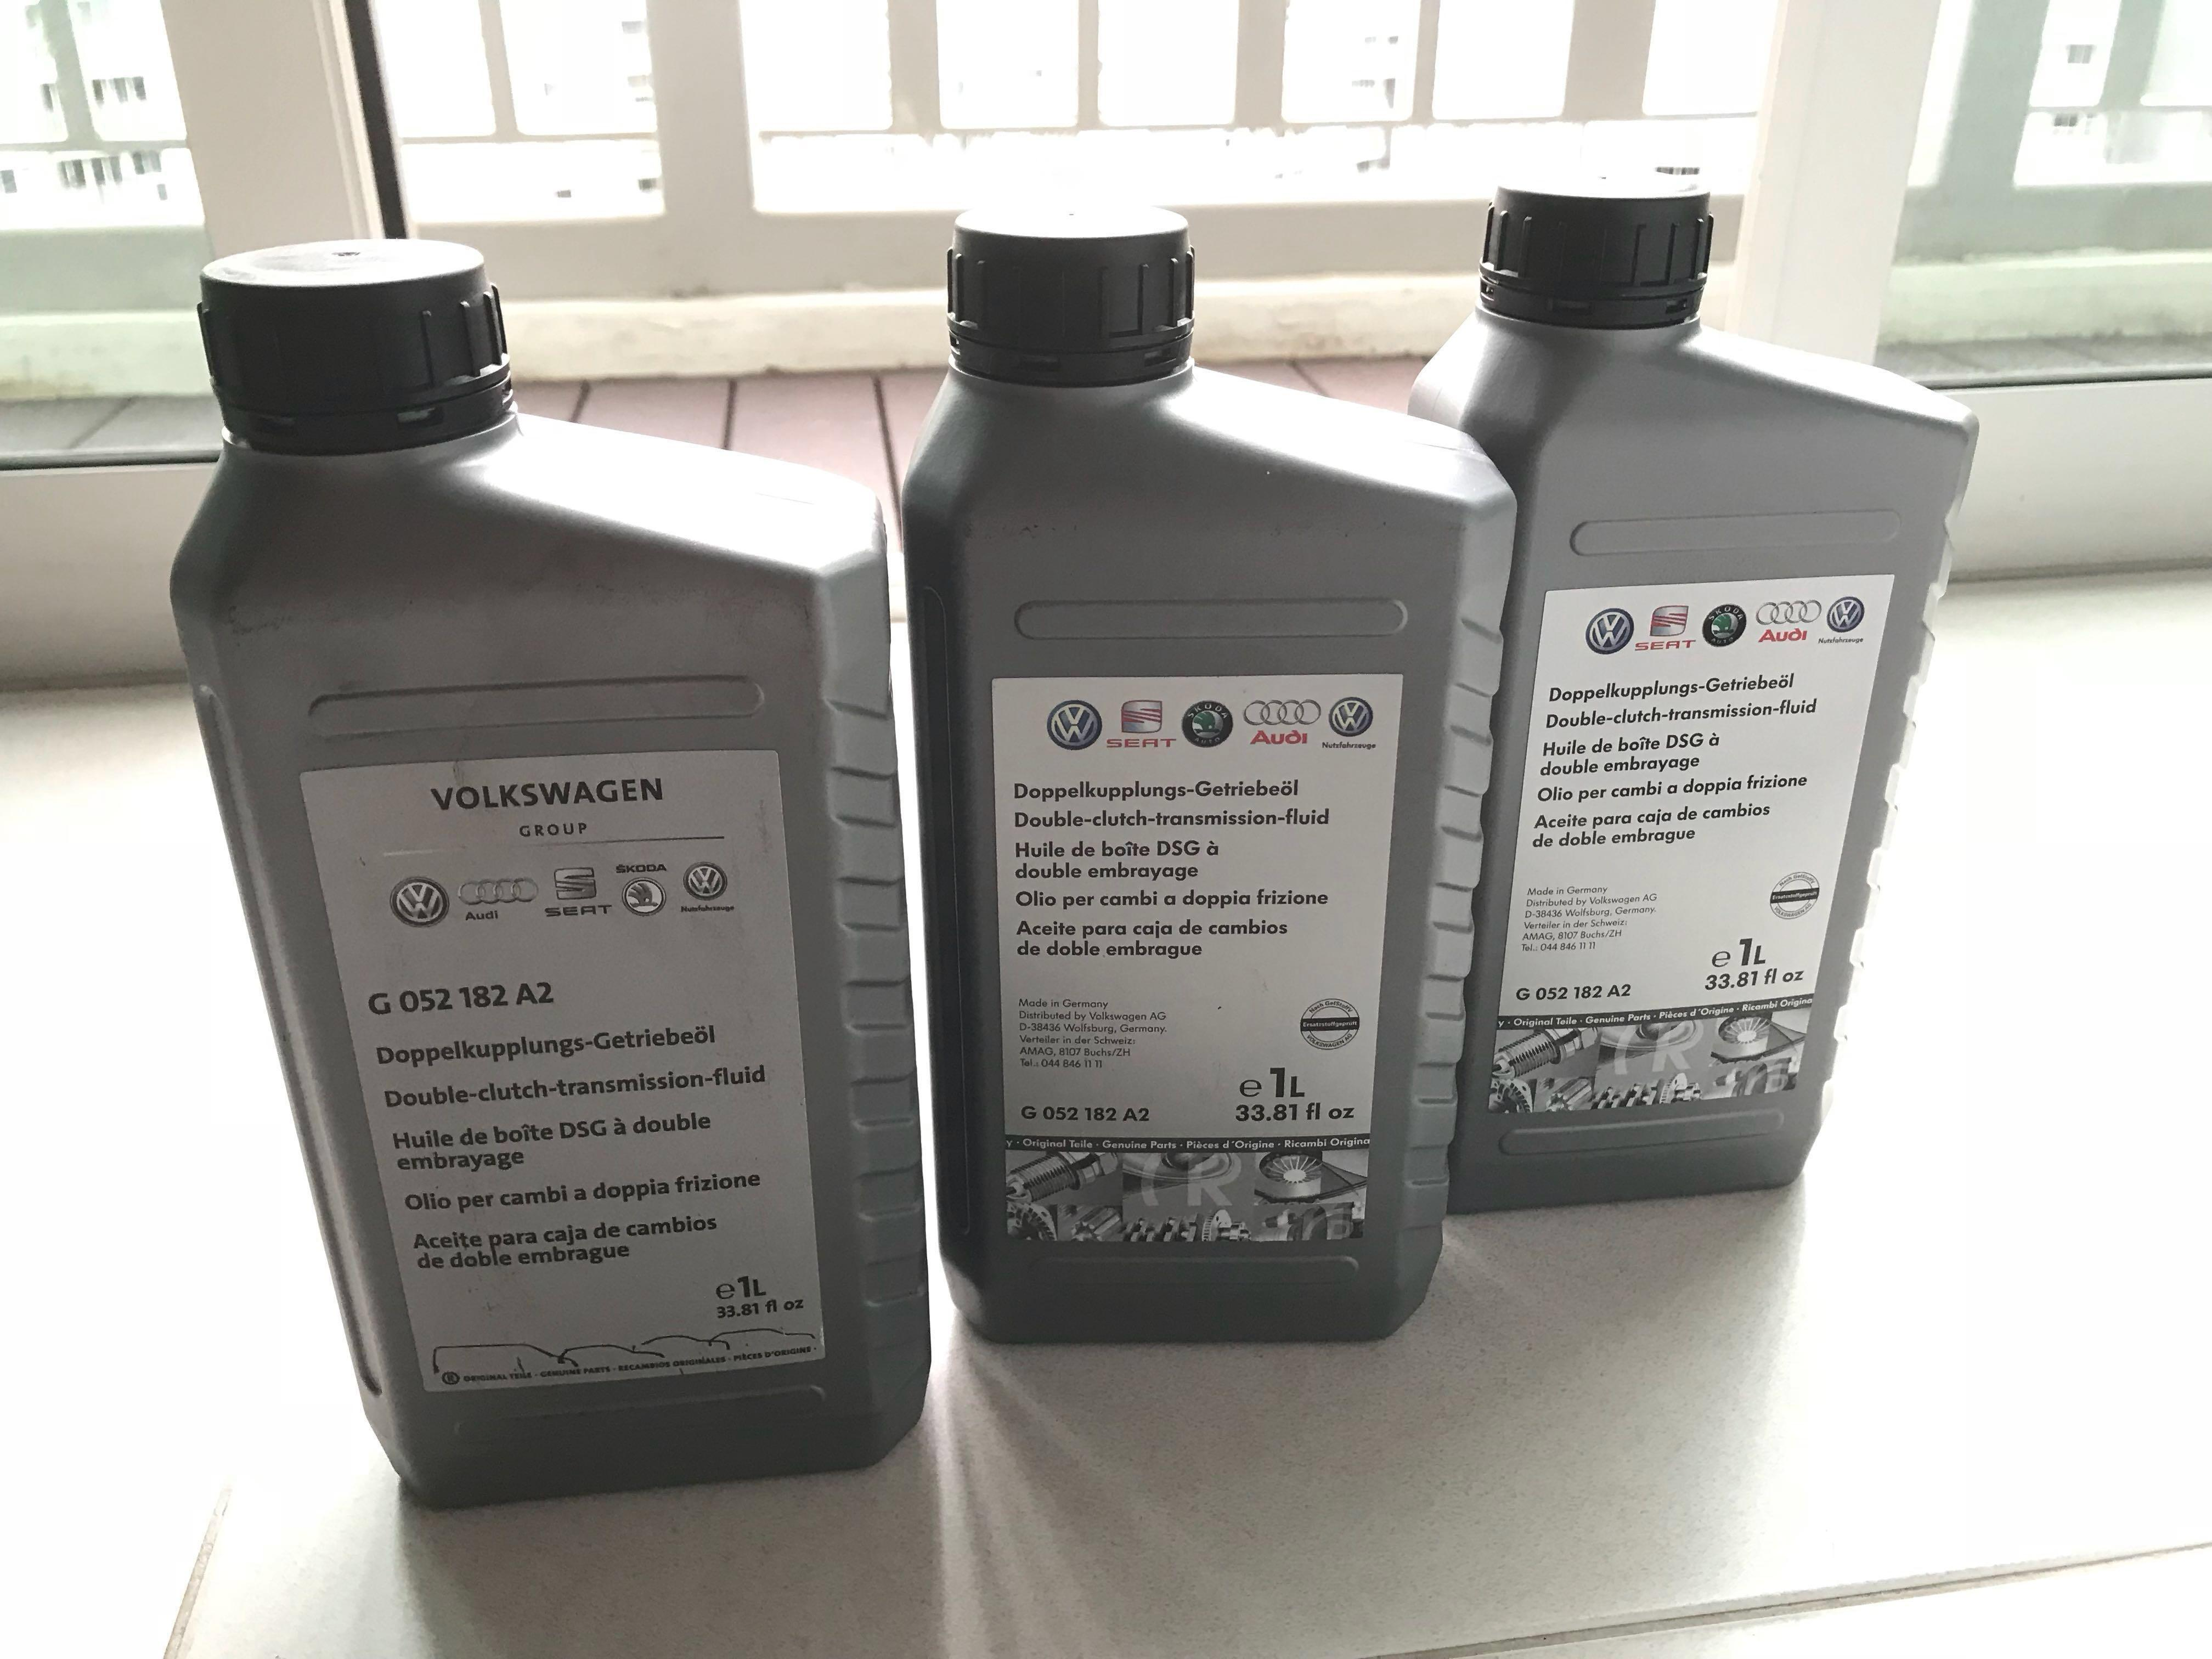 Volkswagen DSG gearbox oil, Car Accessories on Carousell